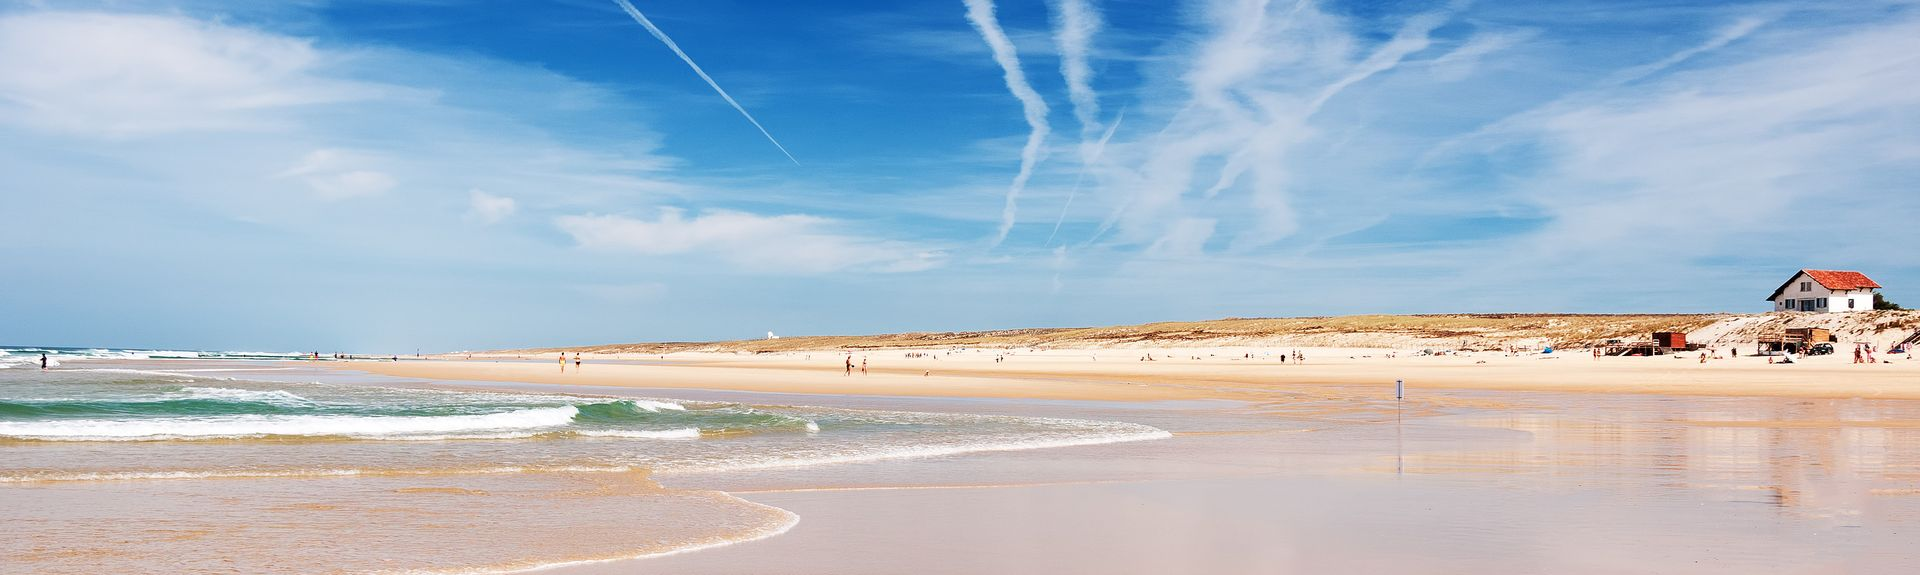 Mimizan, Landes (département), France